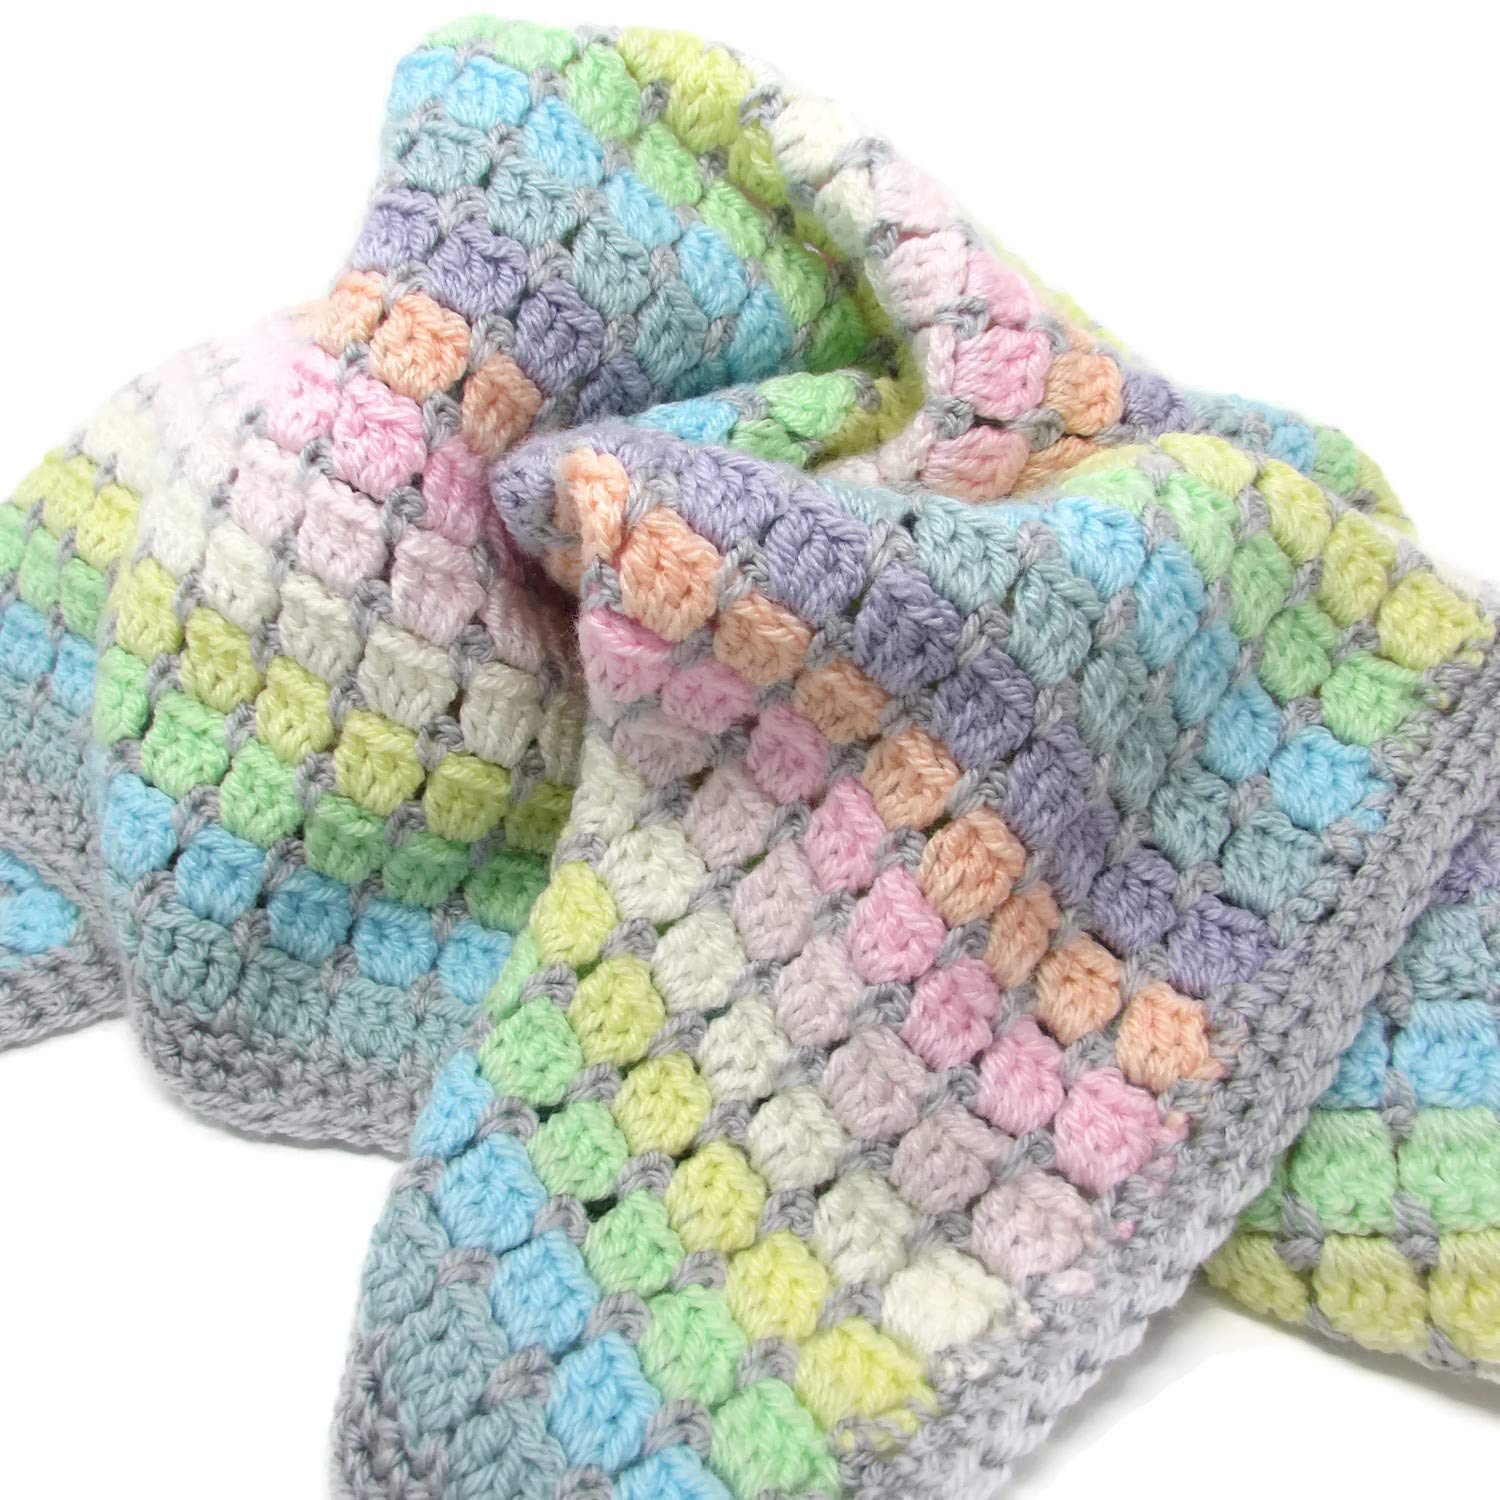 58ab29e3e Vintage Rainbow Crochet Baby Blanket Kit - the perfect gift for crochet  lovers and mums-to-be - everything you need to make a cosy cot blanket for  a ...